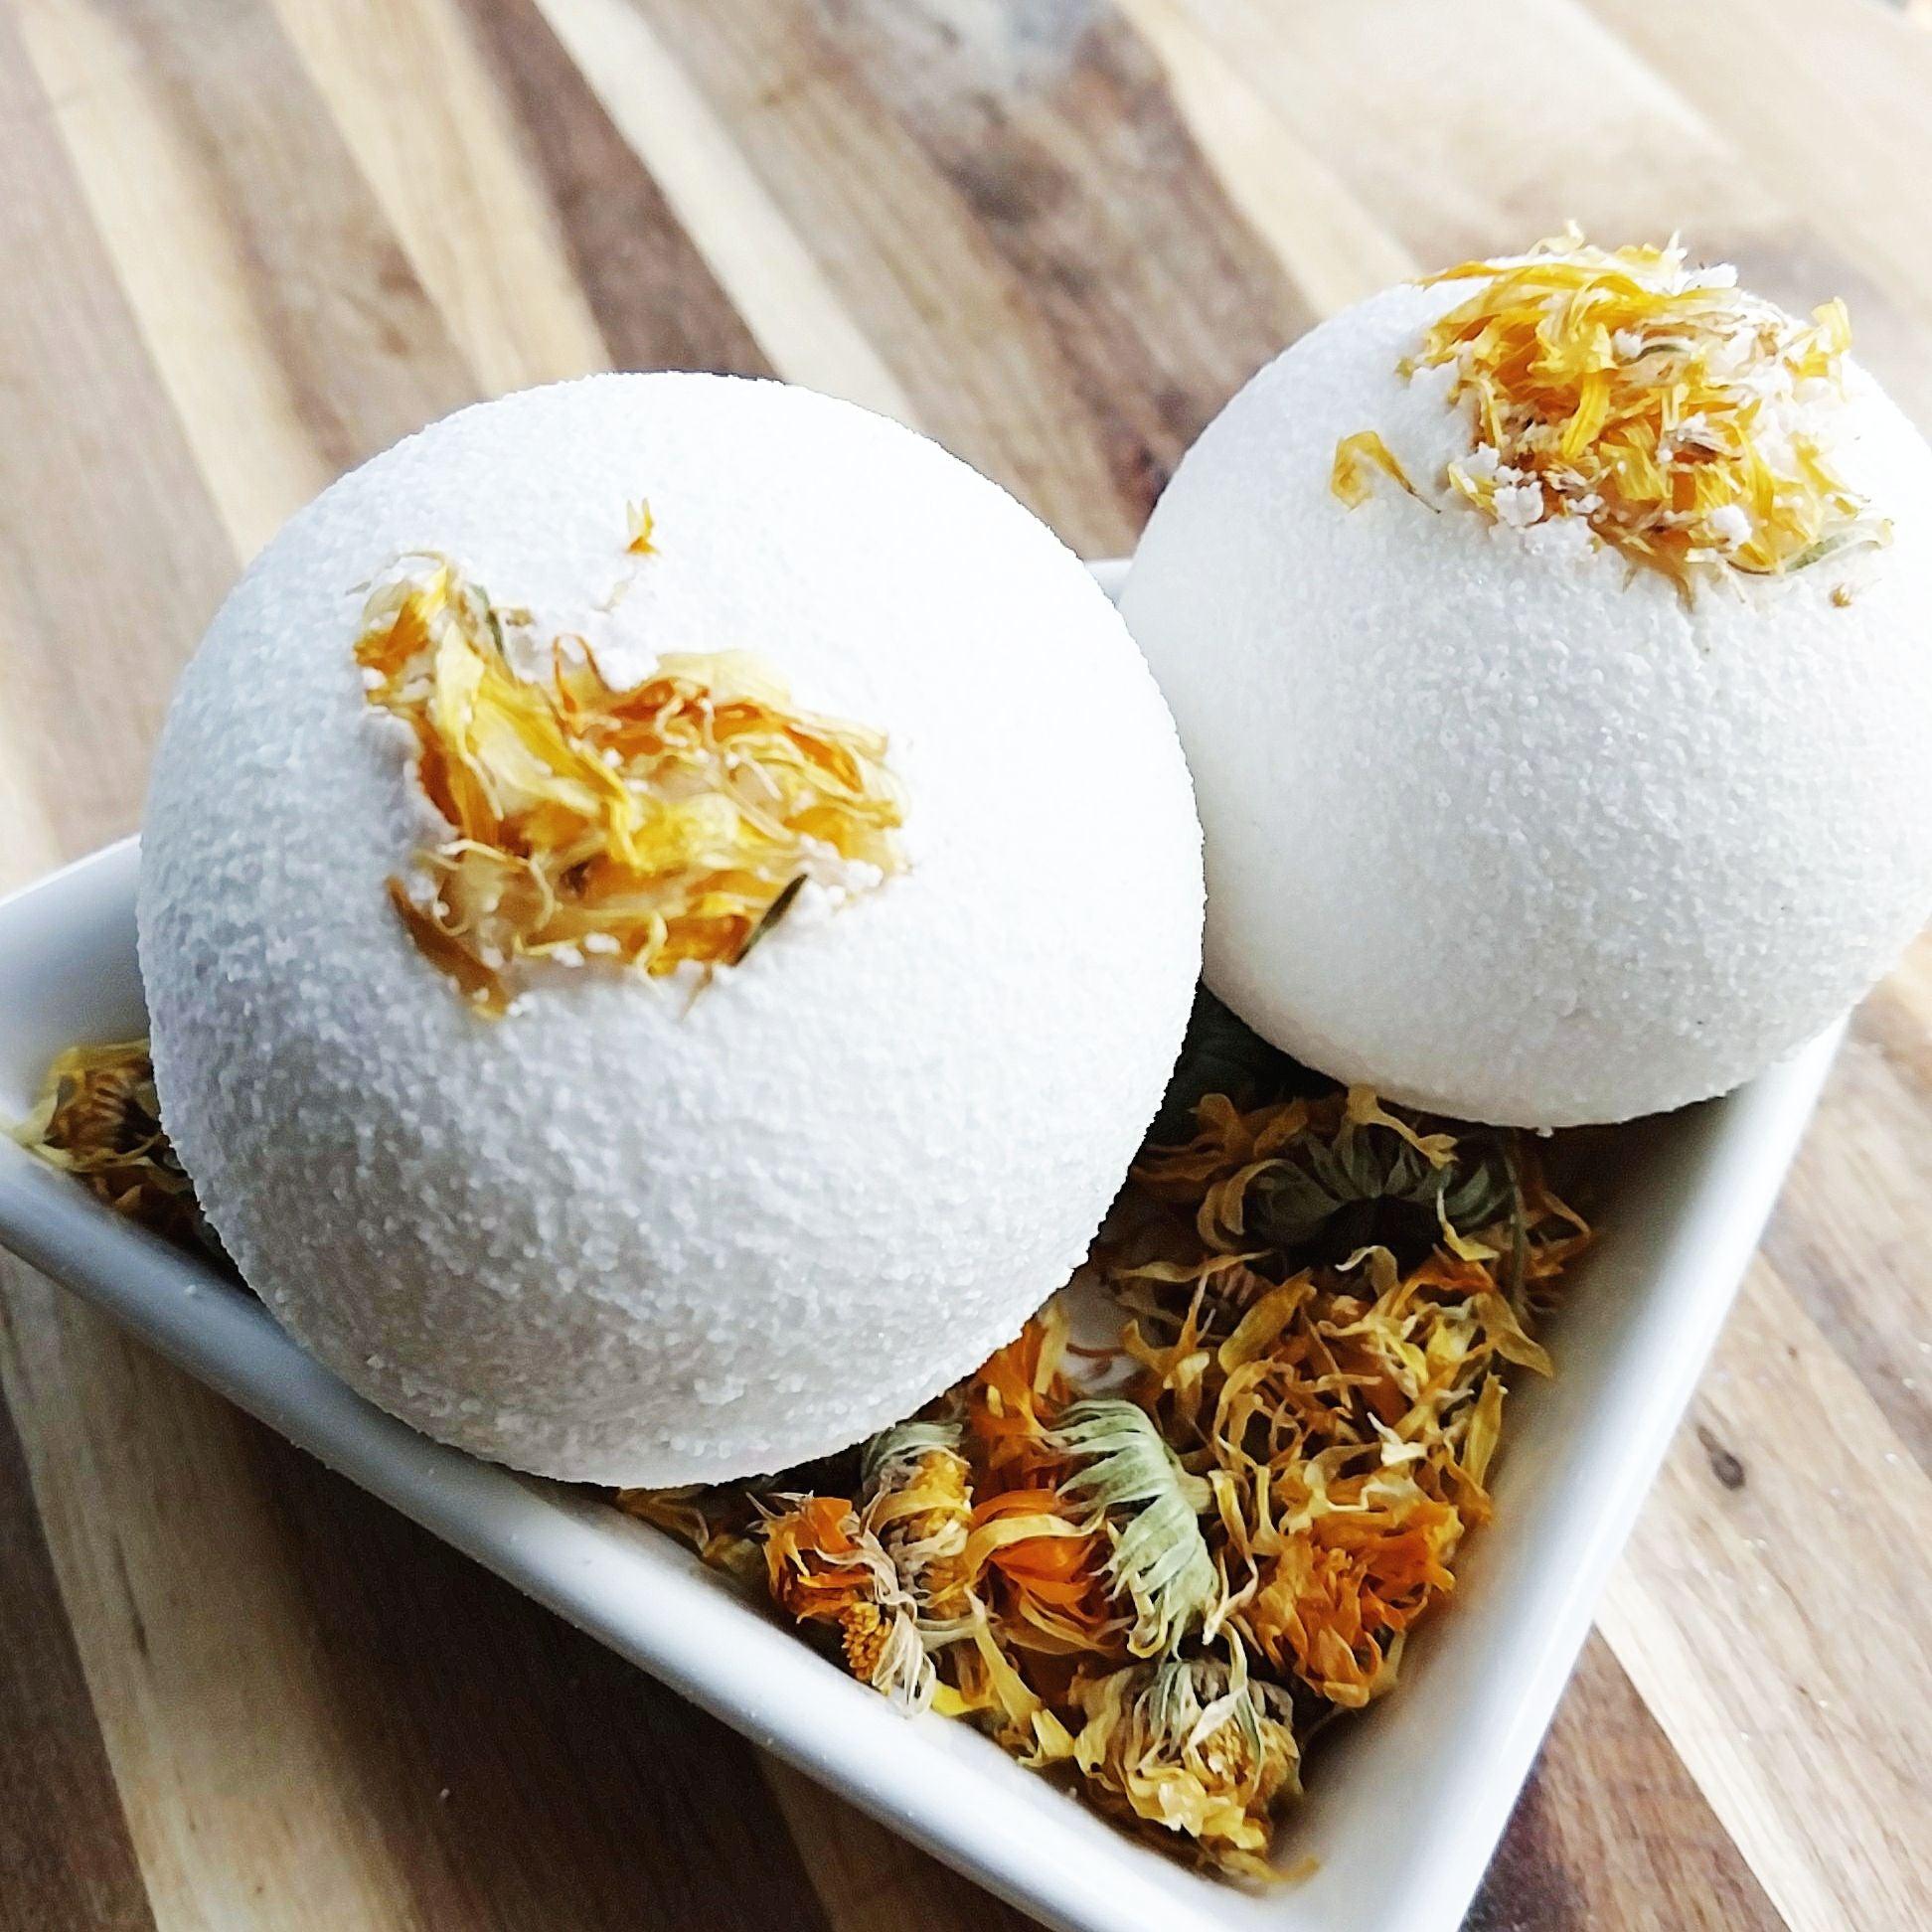 Gardenia bath bombs by Sunbasilgarden